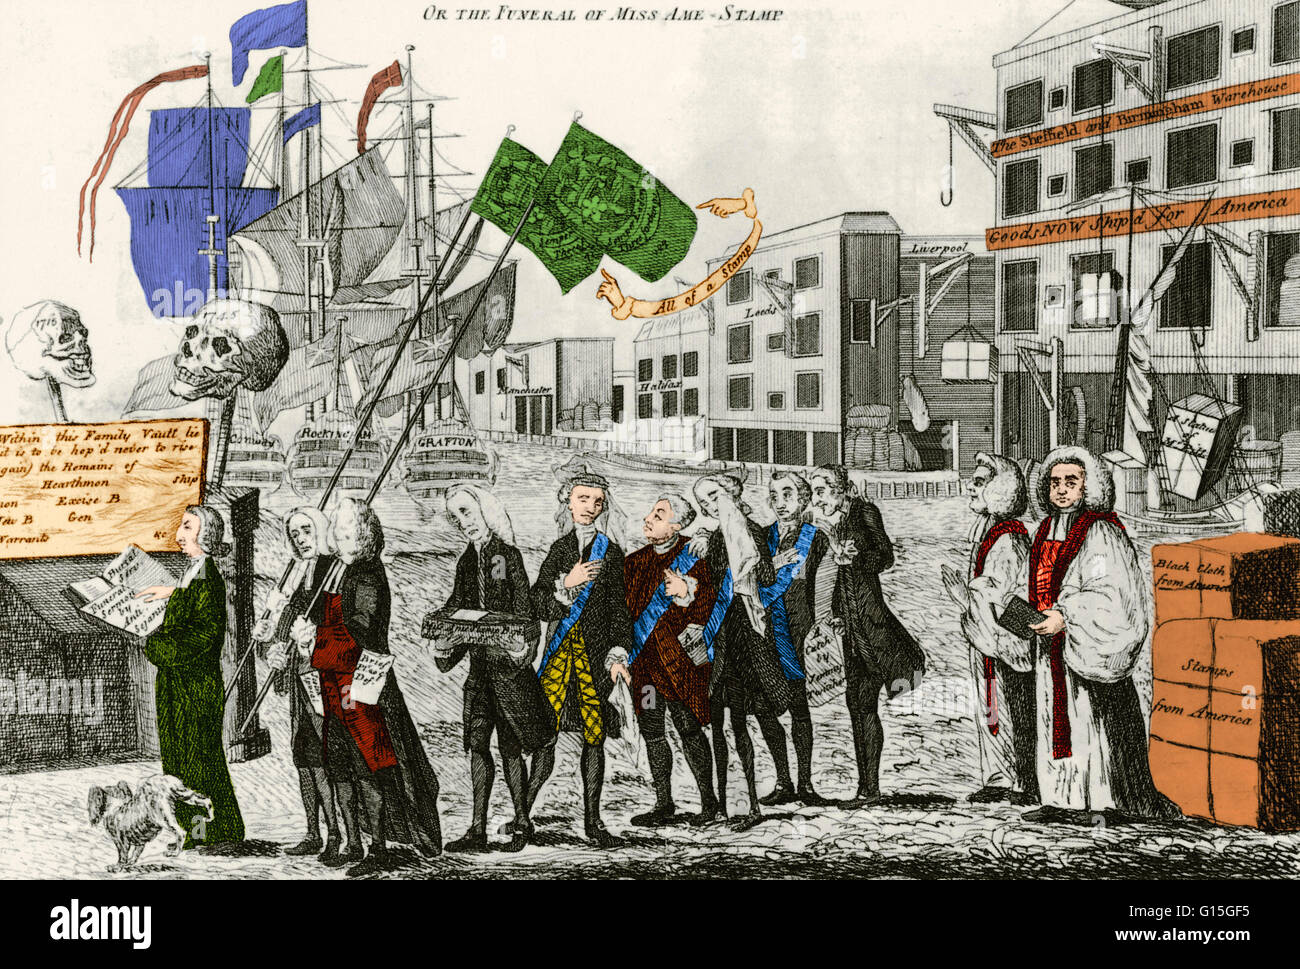 British cartoon titled 'The Repeal, or the Funeral of Miss Ame-Stamp' a 1766 engraving. The cartoon shows - Stock Image